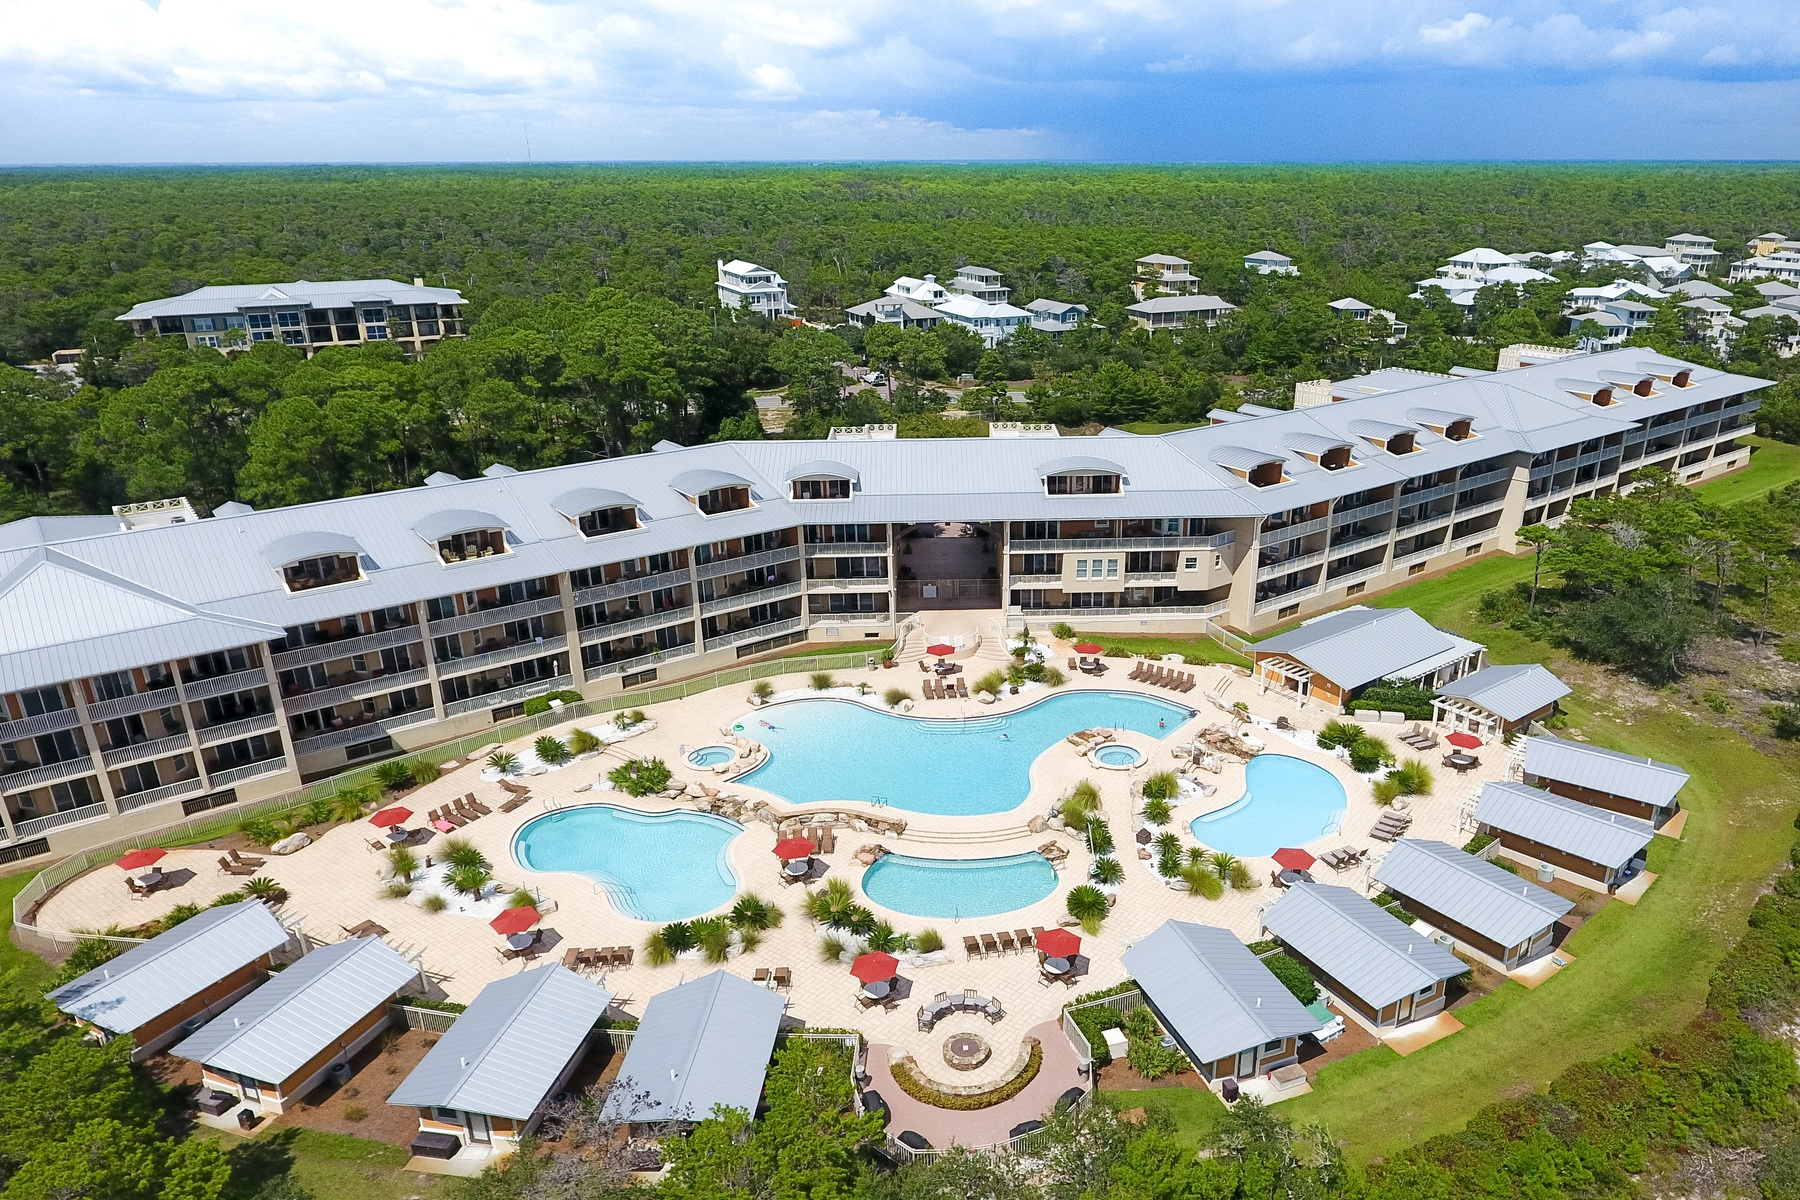 Condominium for Sale at TWO STORY PENTHOUSE WITH GULF VIEWS FROM EVERY BEDROOM 1653 W County Highway 30A 3112 Santa Rosa Beach, Florida 32459 United States